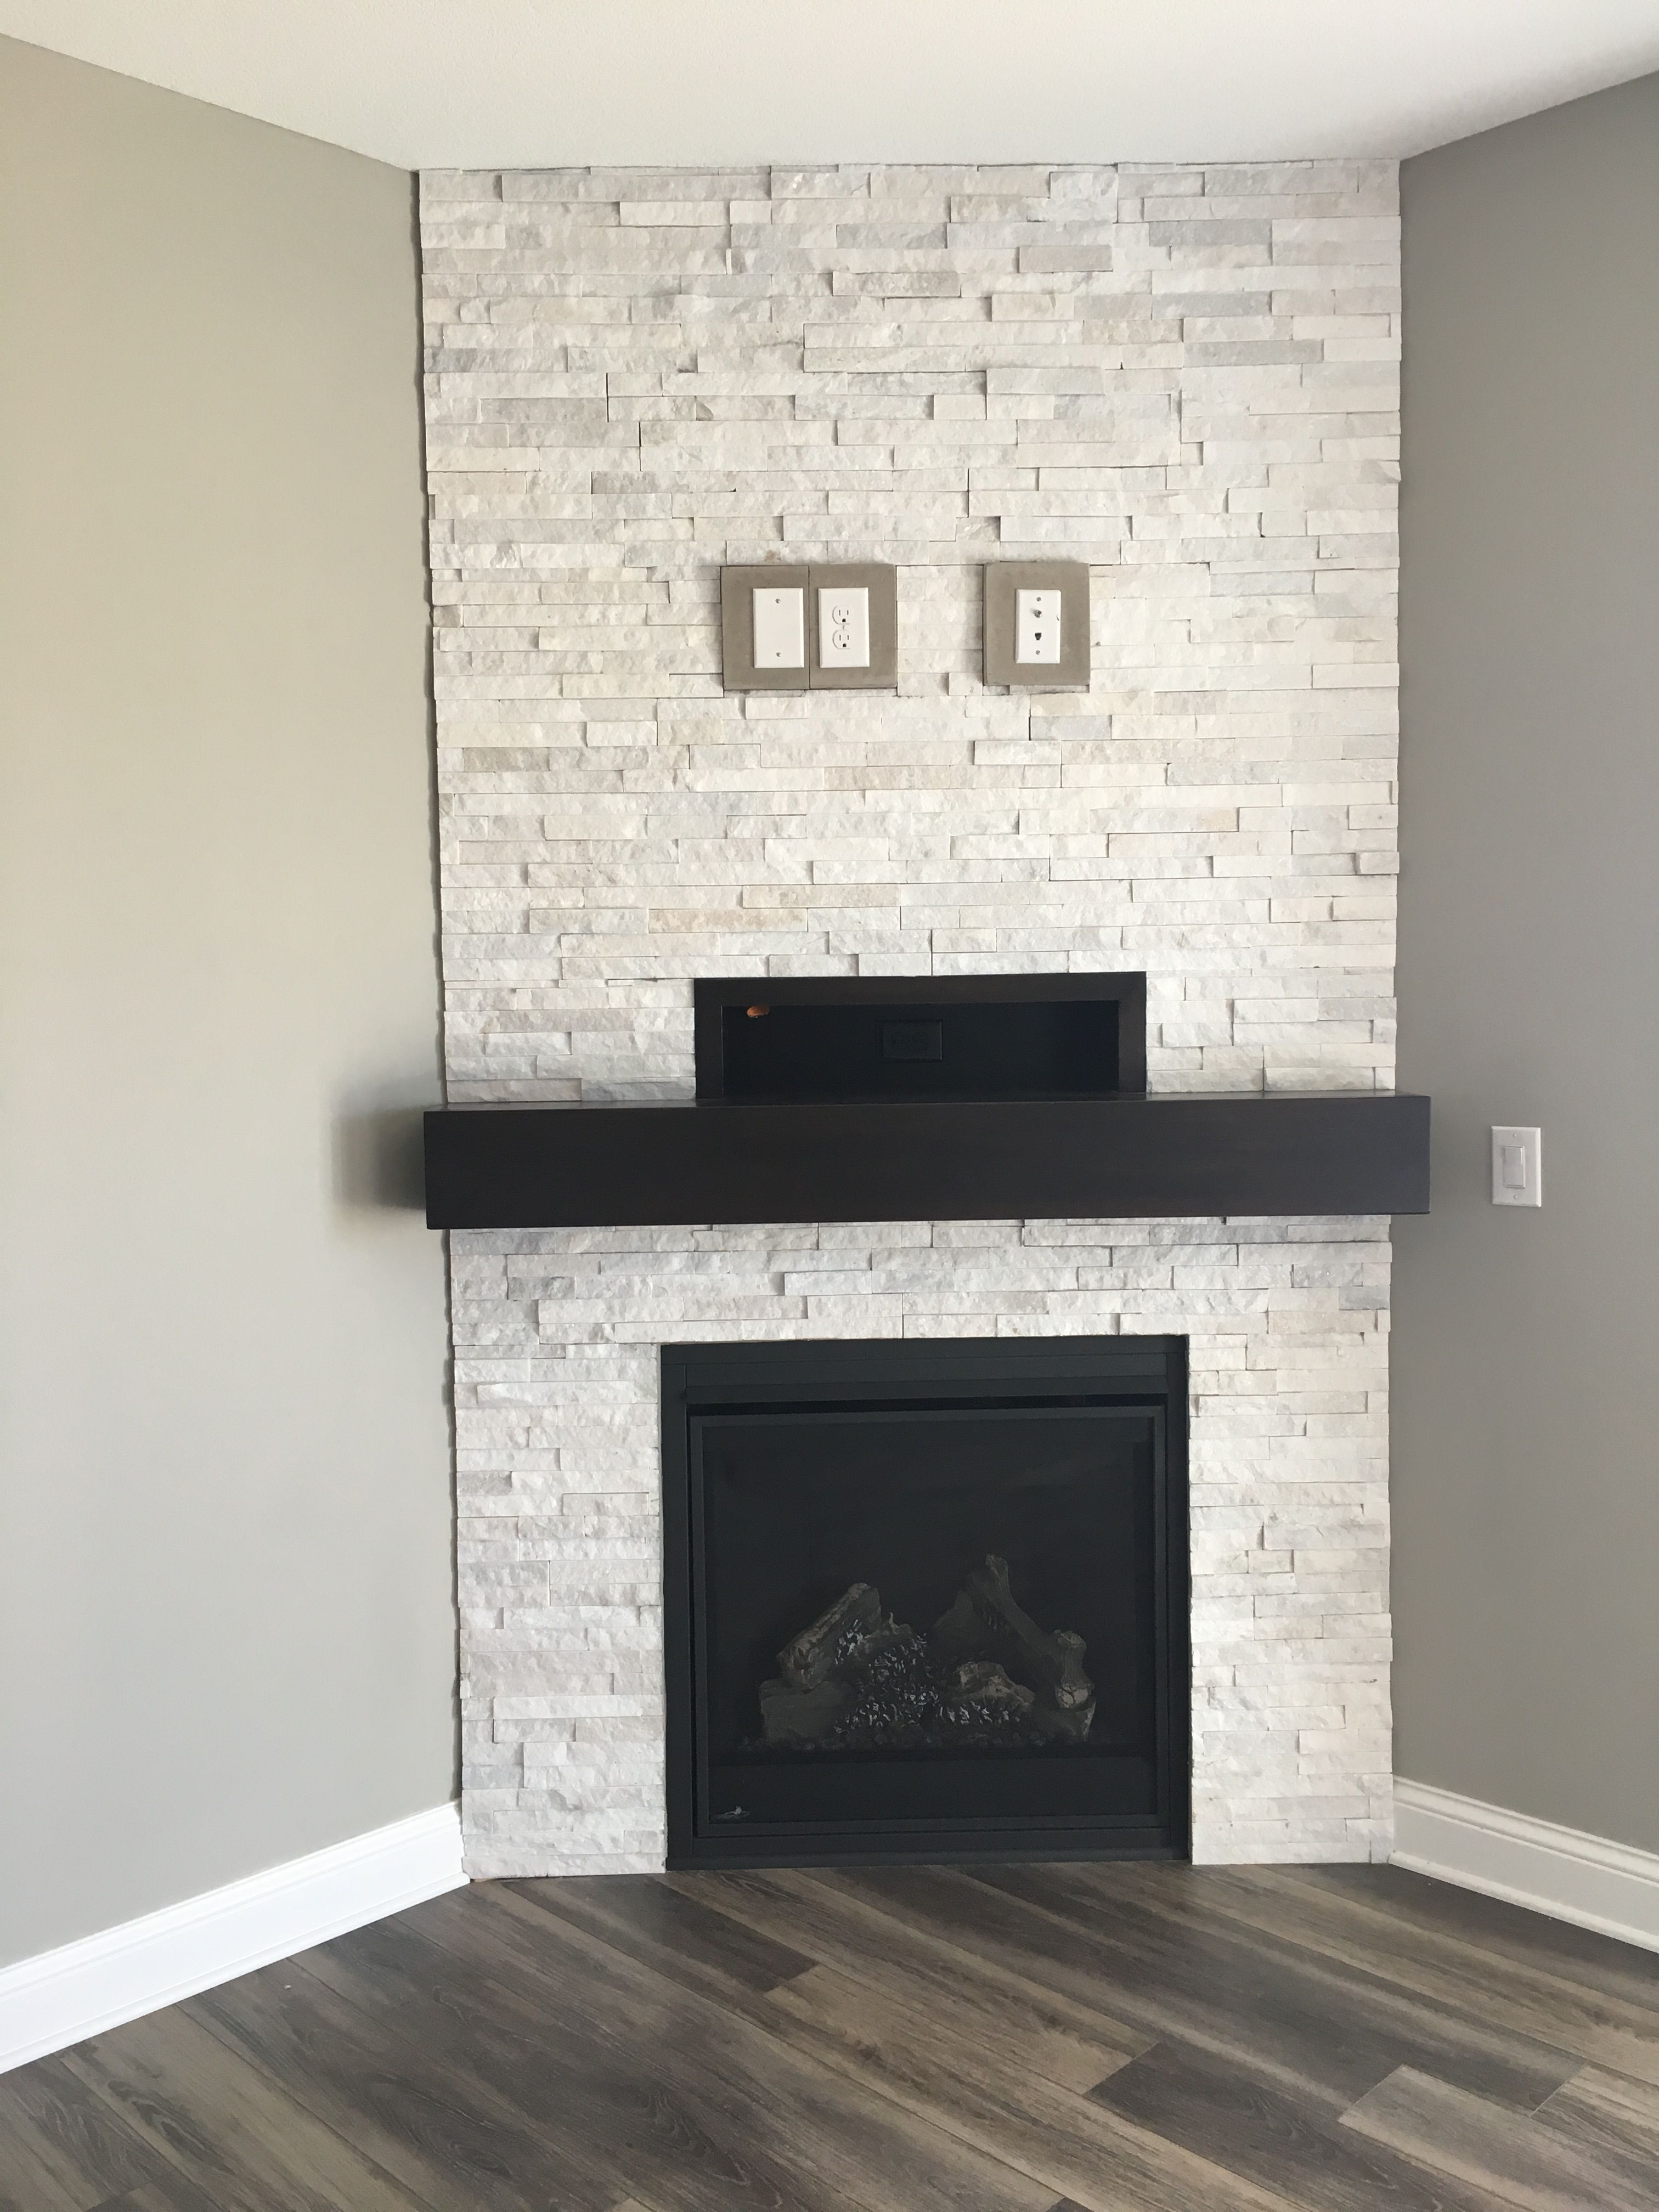 Fireplace Frame New Pin On Fireplace Ideas We Love